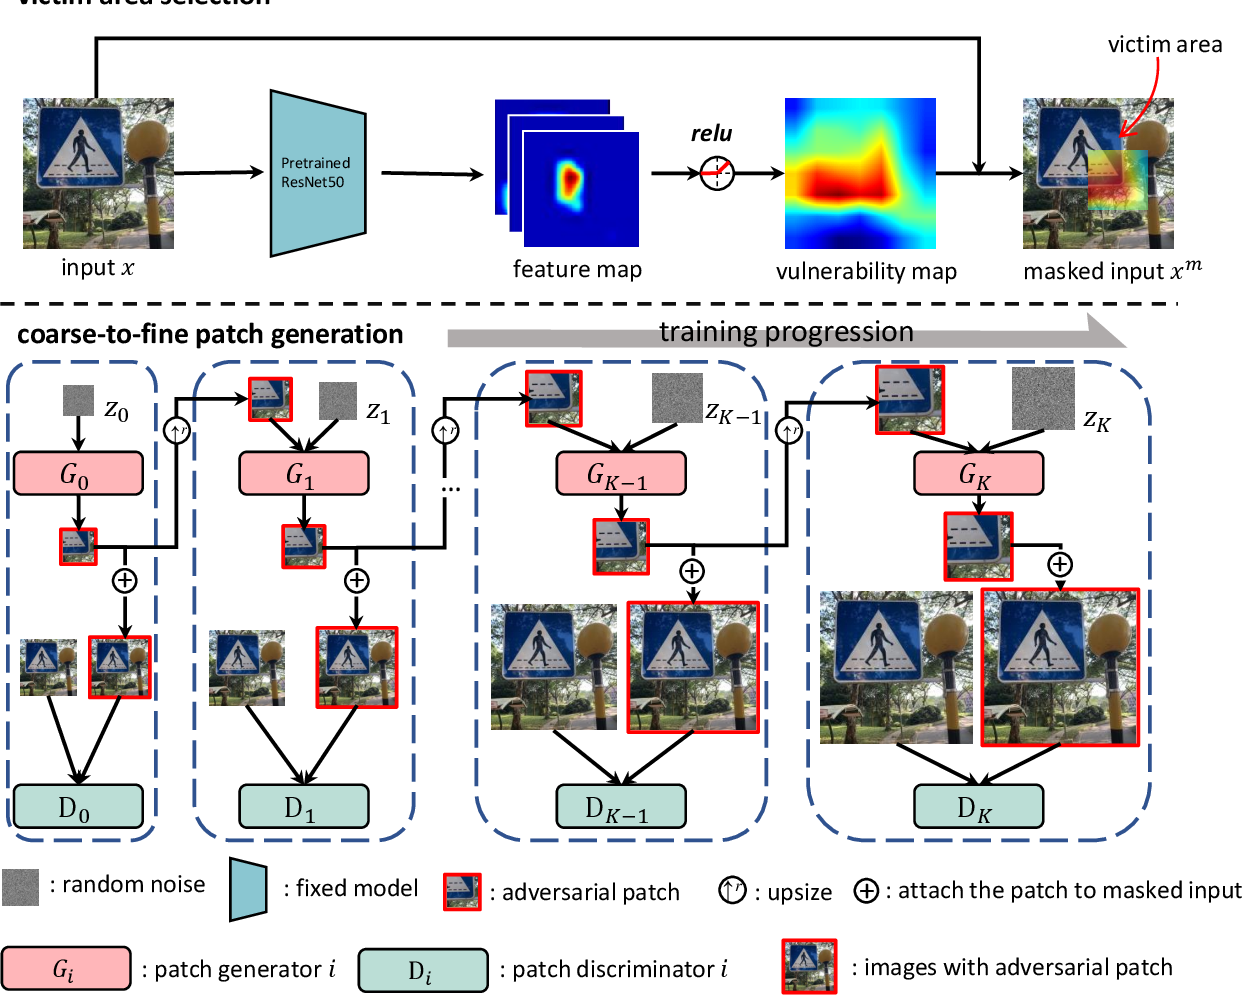 Figure 3 for Inconspicuous Adversarial Patches for Fooling Image Recognition Systems on Mobile Devices